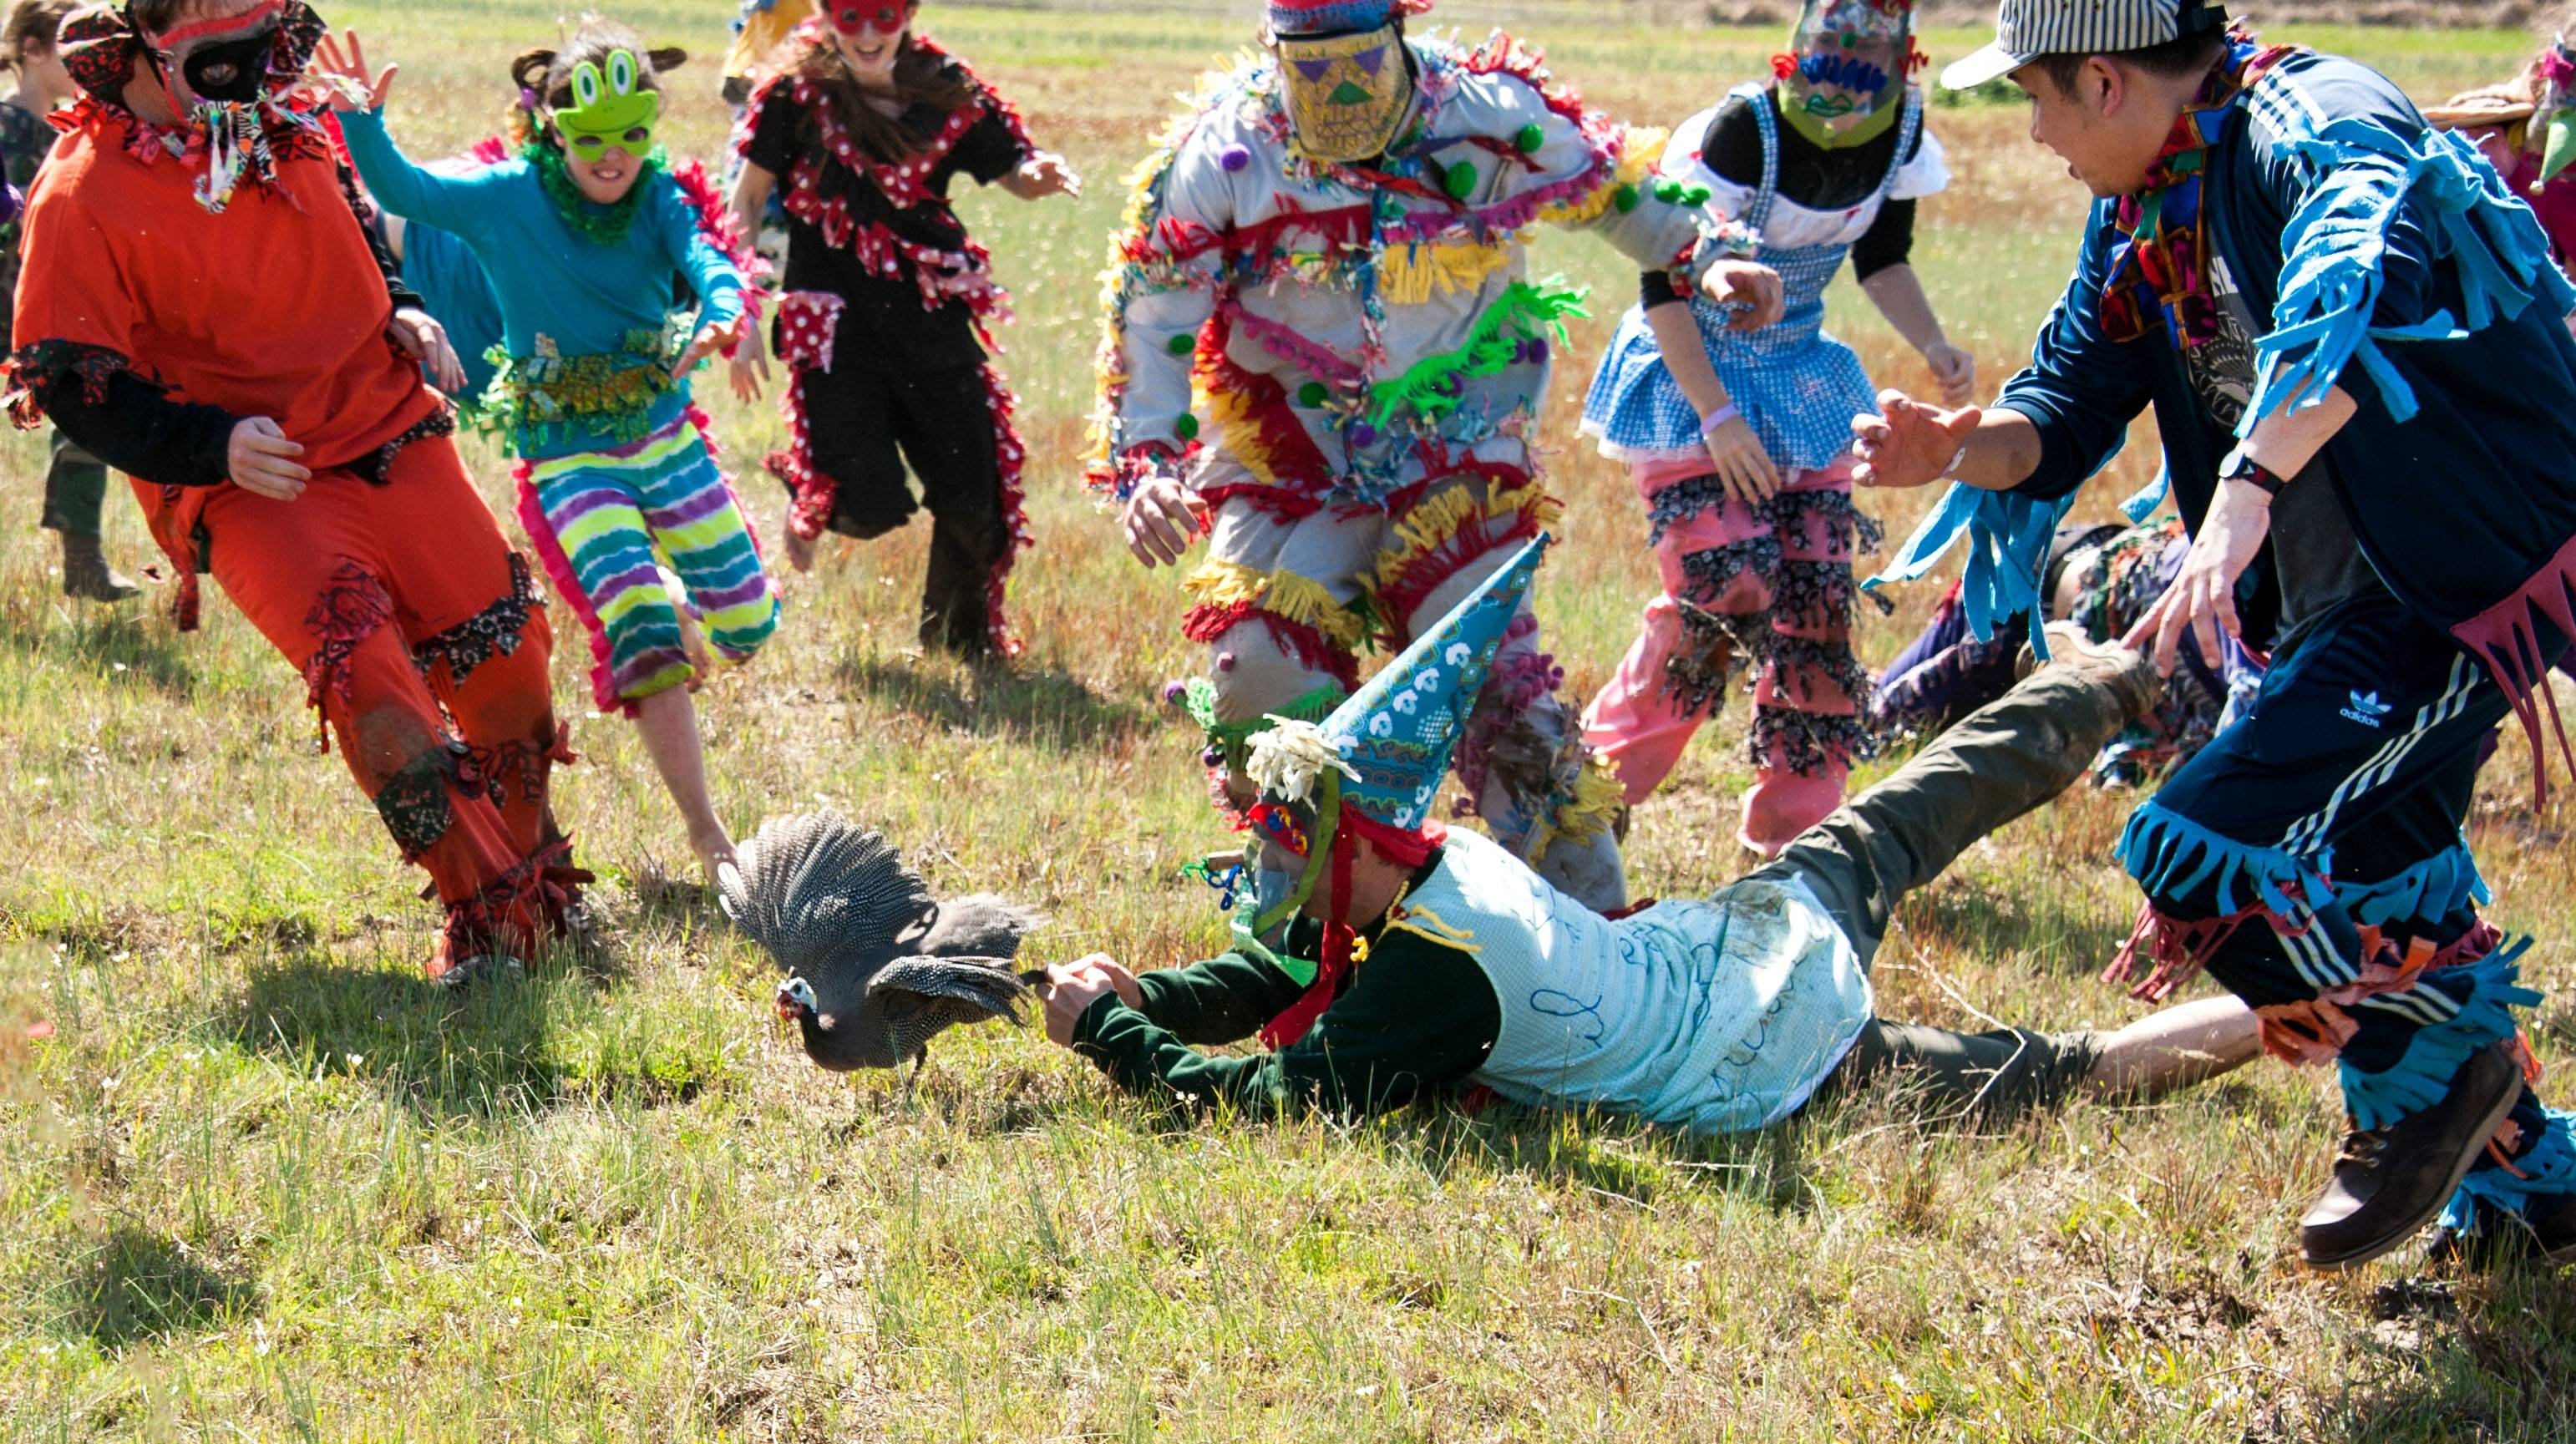 Young participants take part in a guinea hen chase in Eunice, La., a Mardi Gras season tradition in Louisiana's Cajun country. The region has its own family-oriented Mardi Gras customs rooted in rural traditions, very different from the Mardi Gras parties and parades of New Orleans.